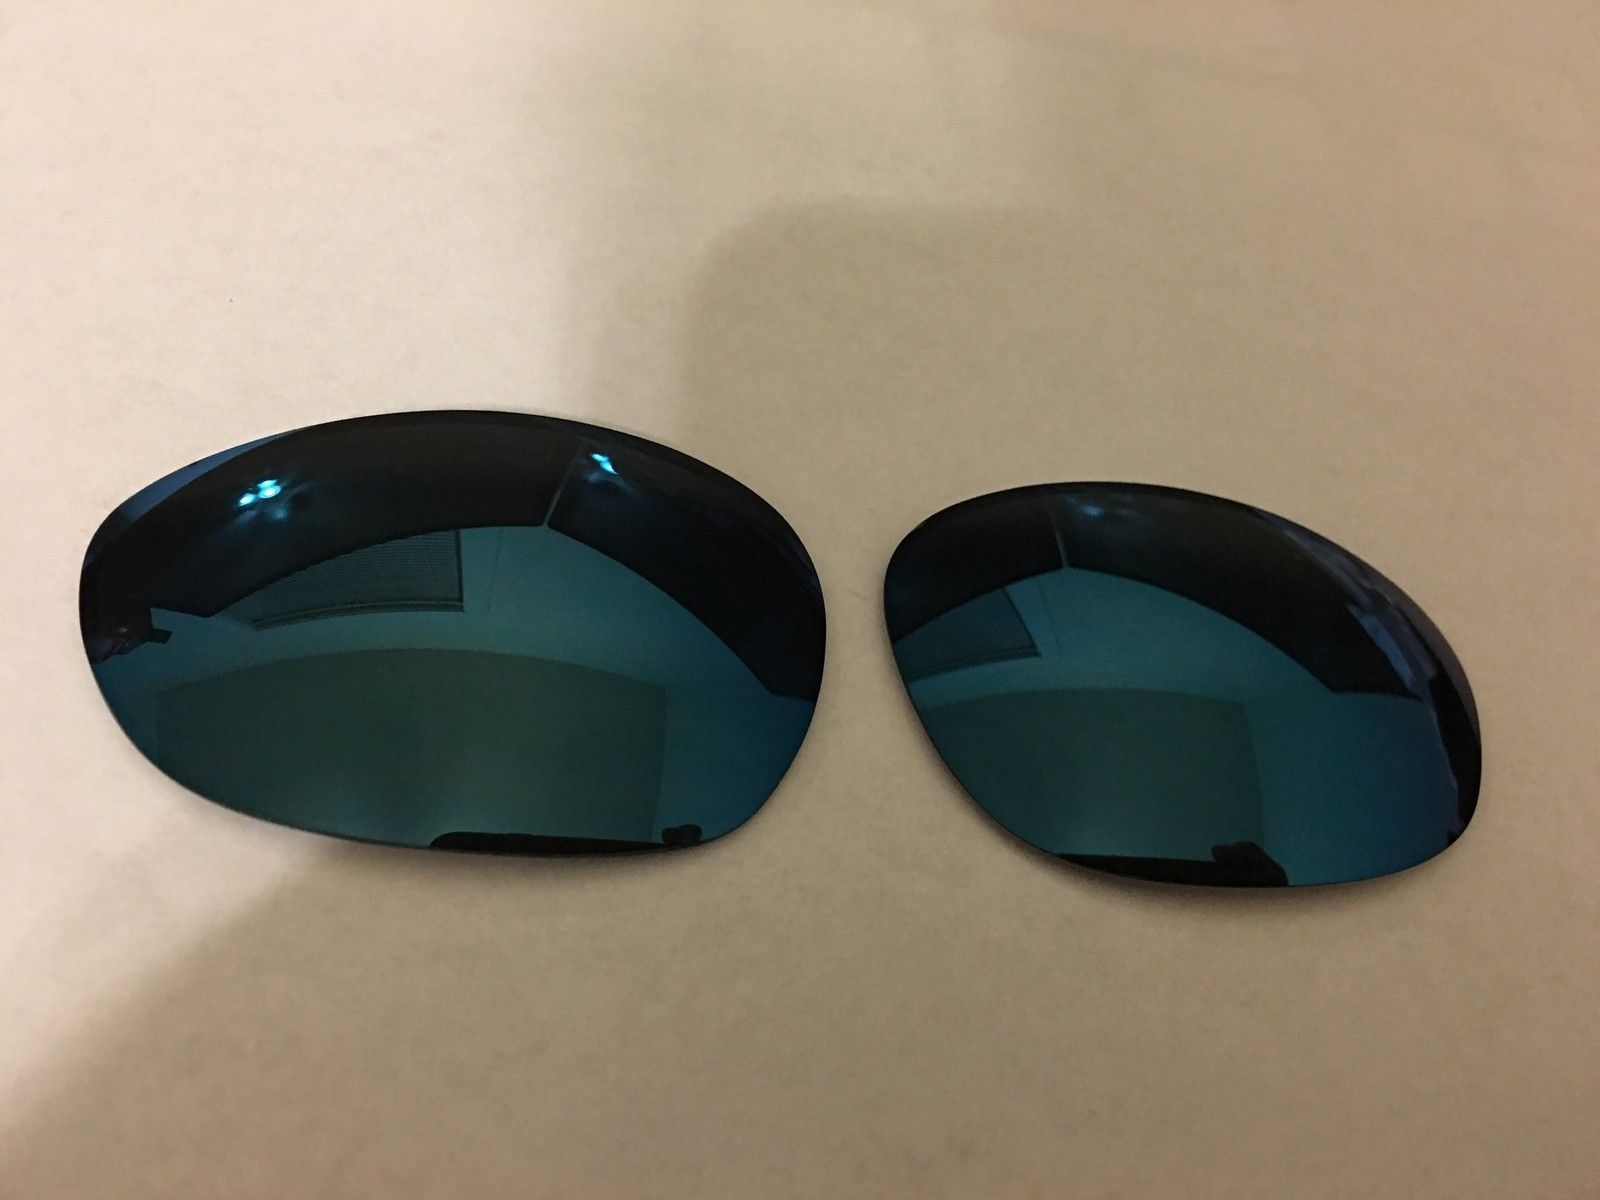 Two Pairs of XX (X-Man Plasma Refinish) with Lens Options - IMG_8451.JPG